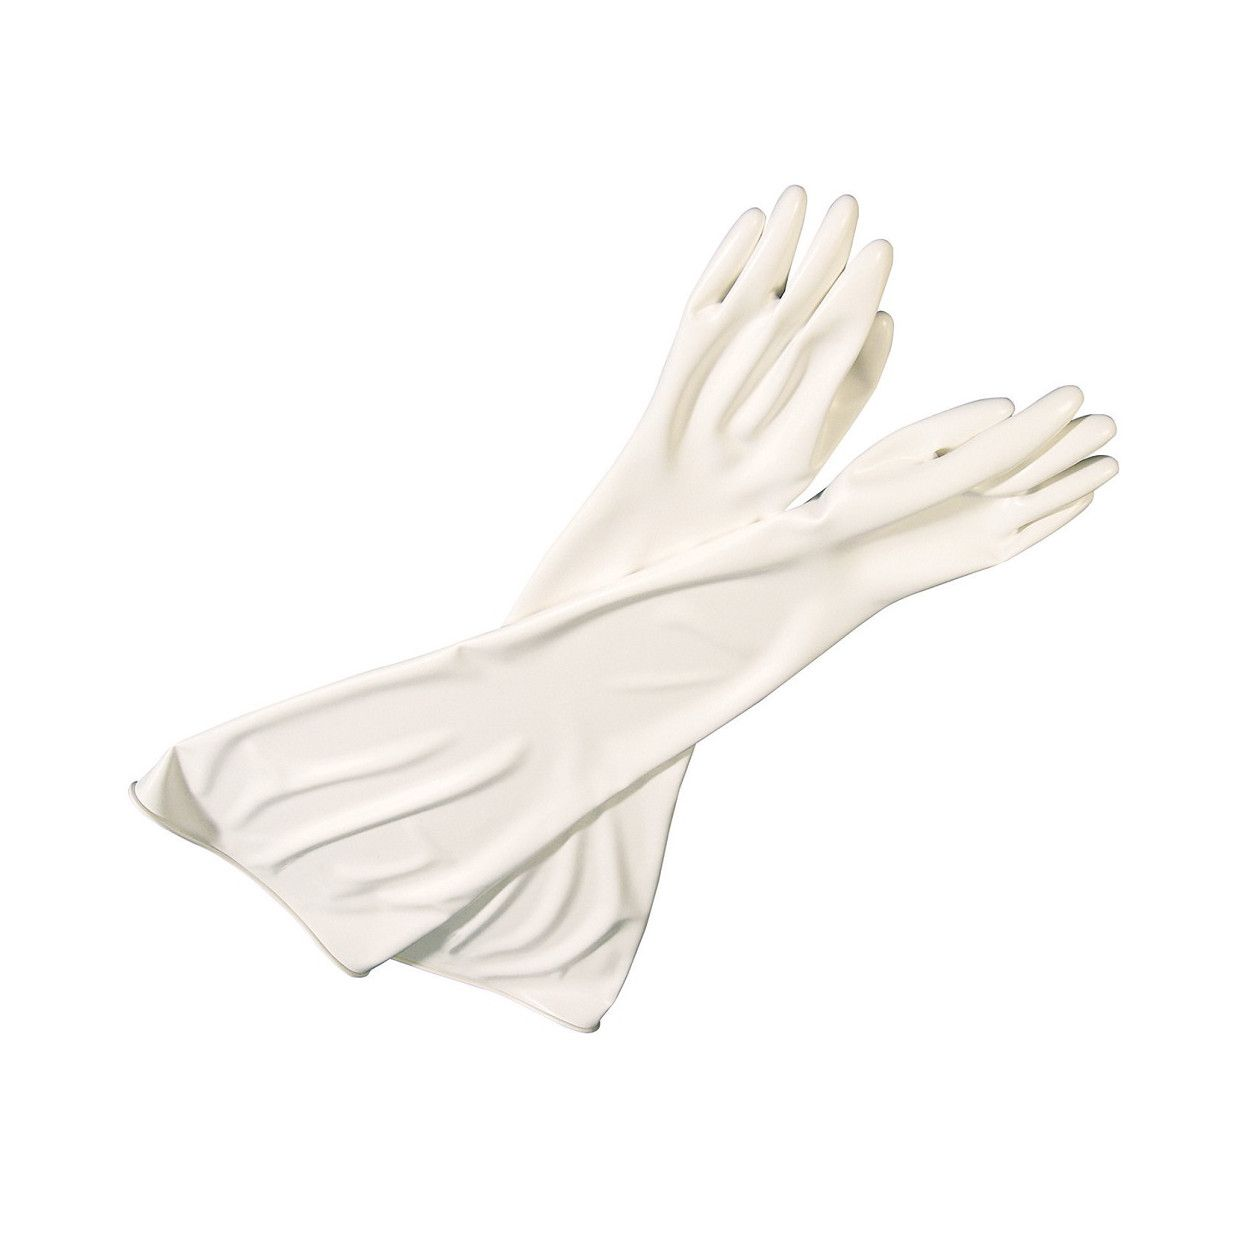 hs-csm-glovebox-gloves-7y1532a-8y1532-8y1532a-5y3032-7y3032-8y3032-8y3032a-north-csm